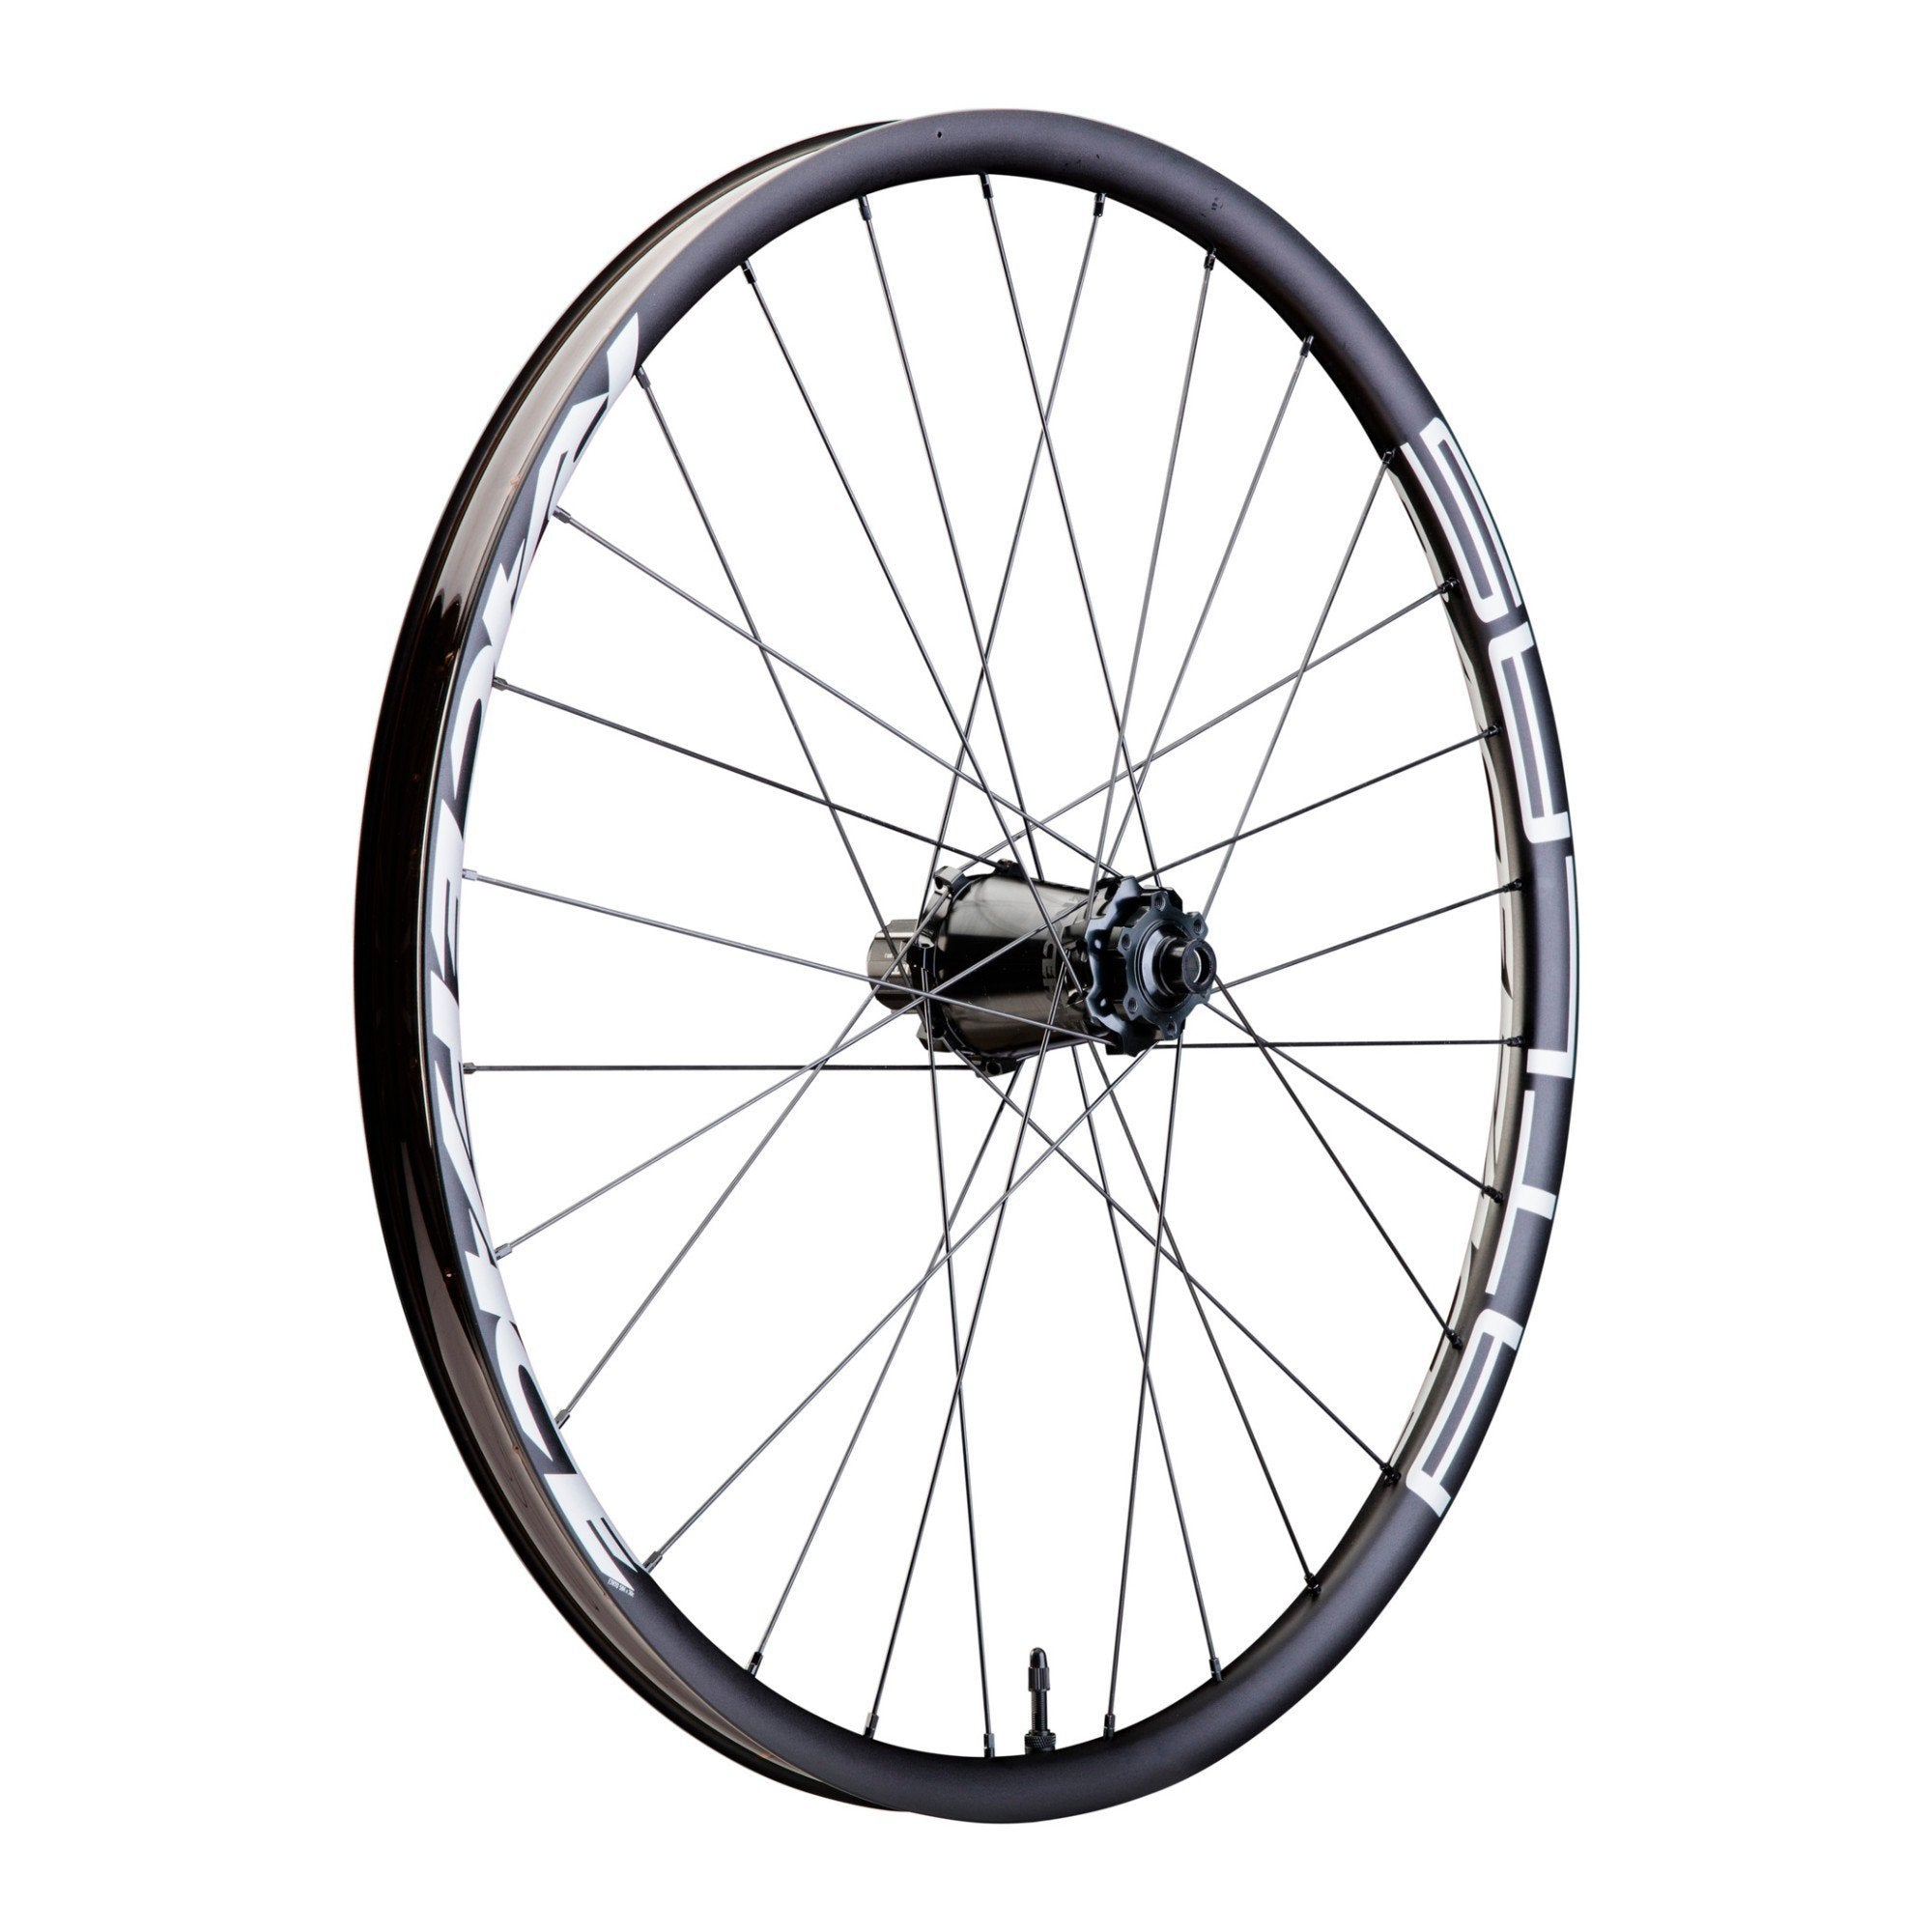 Race Face Components > Factory Wheels Race Face Atlas 30mm Wheel Rear